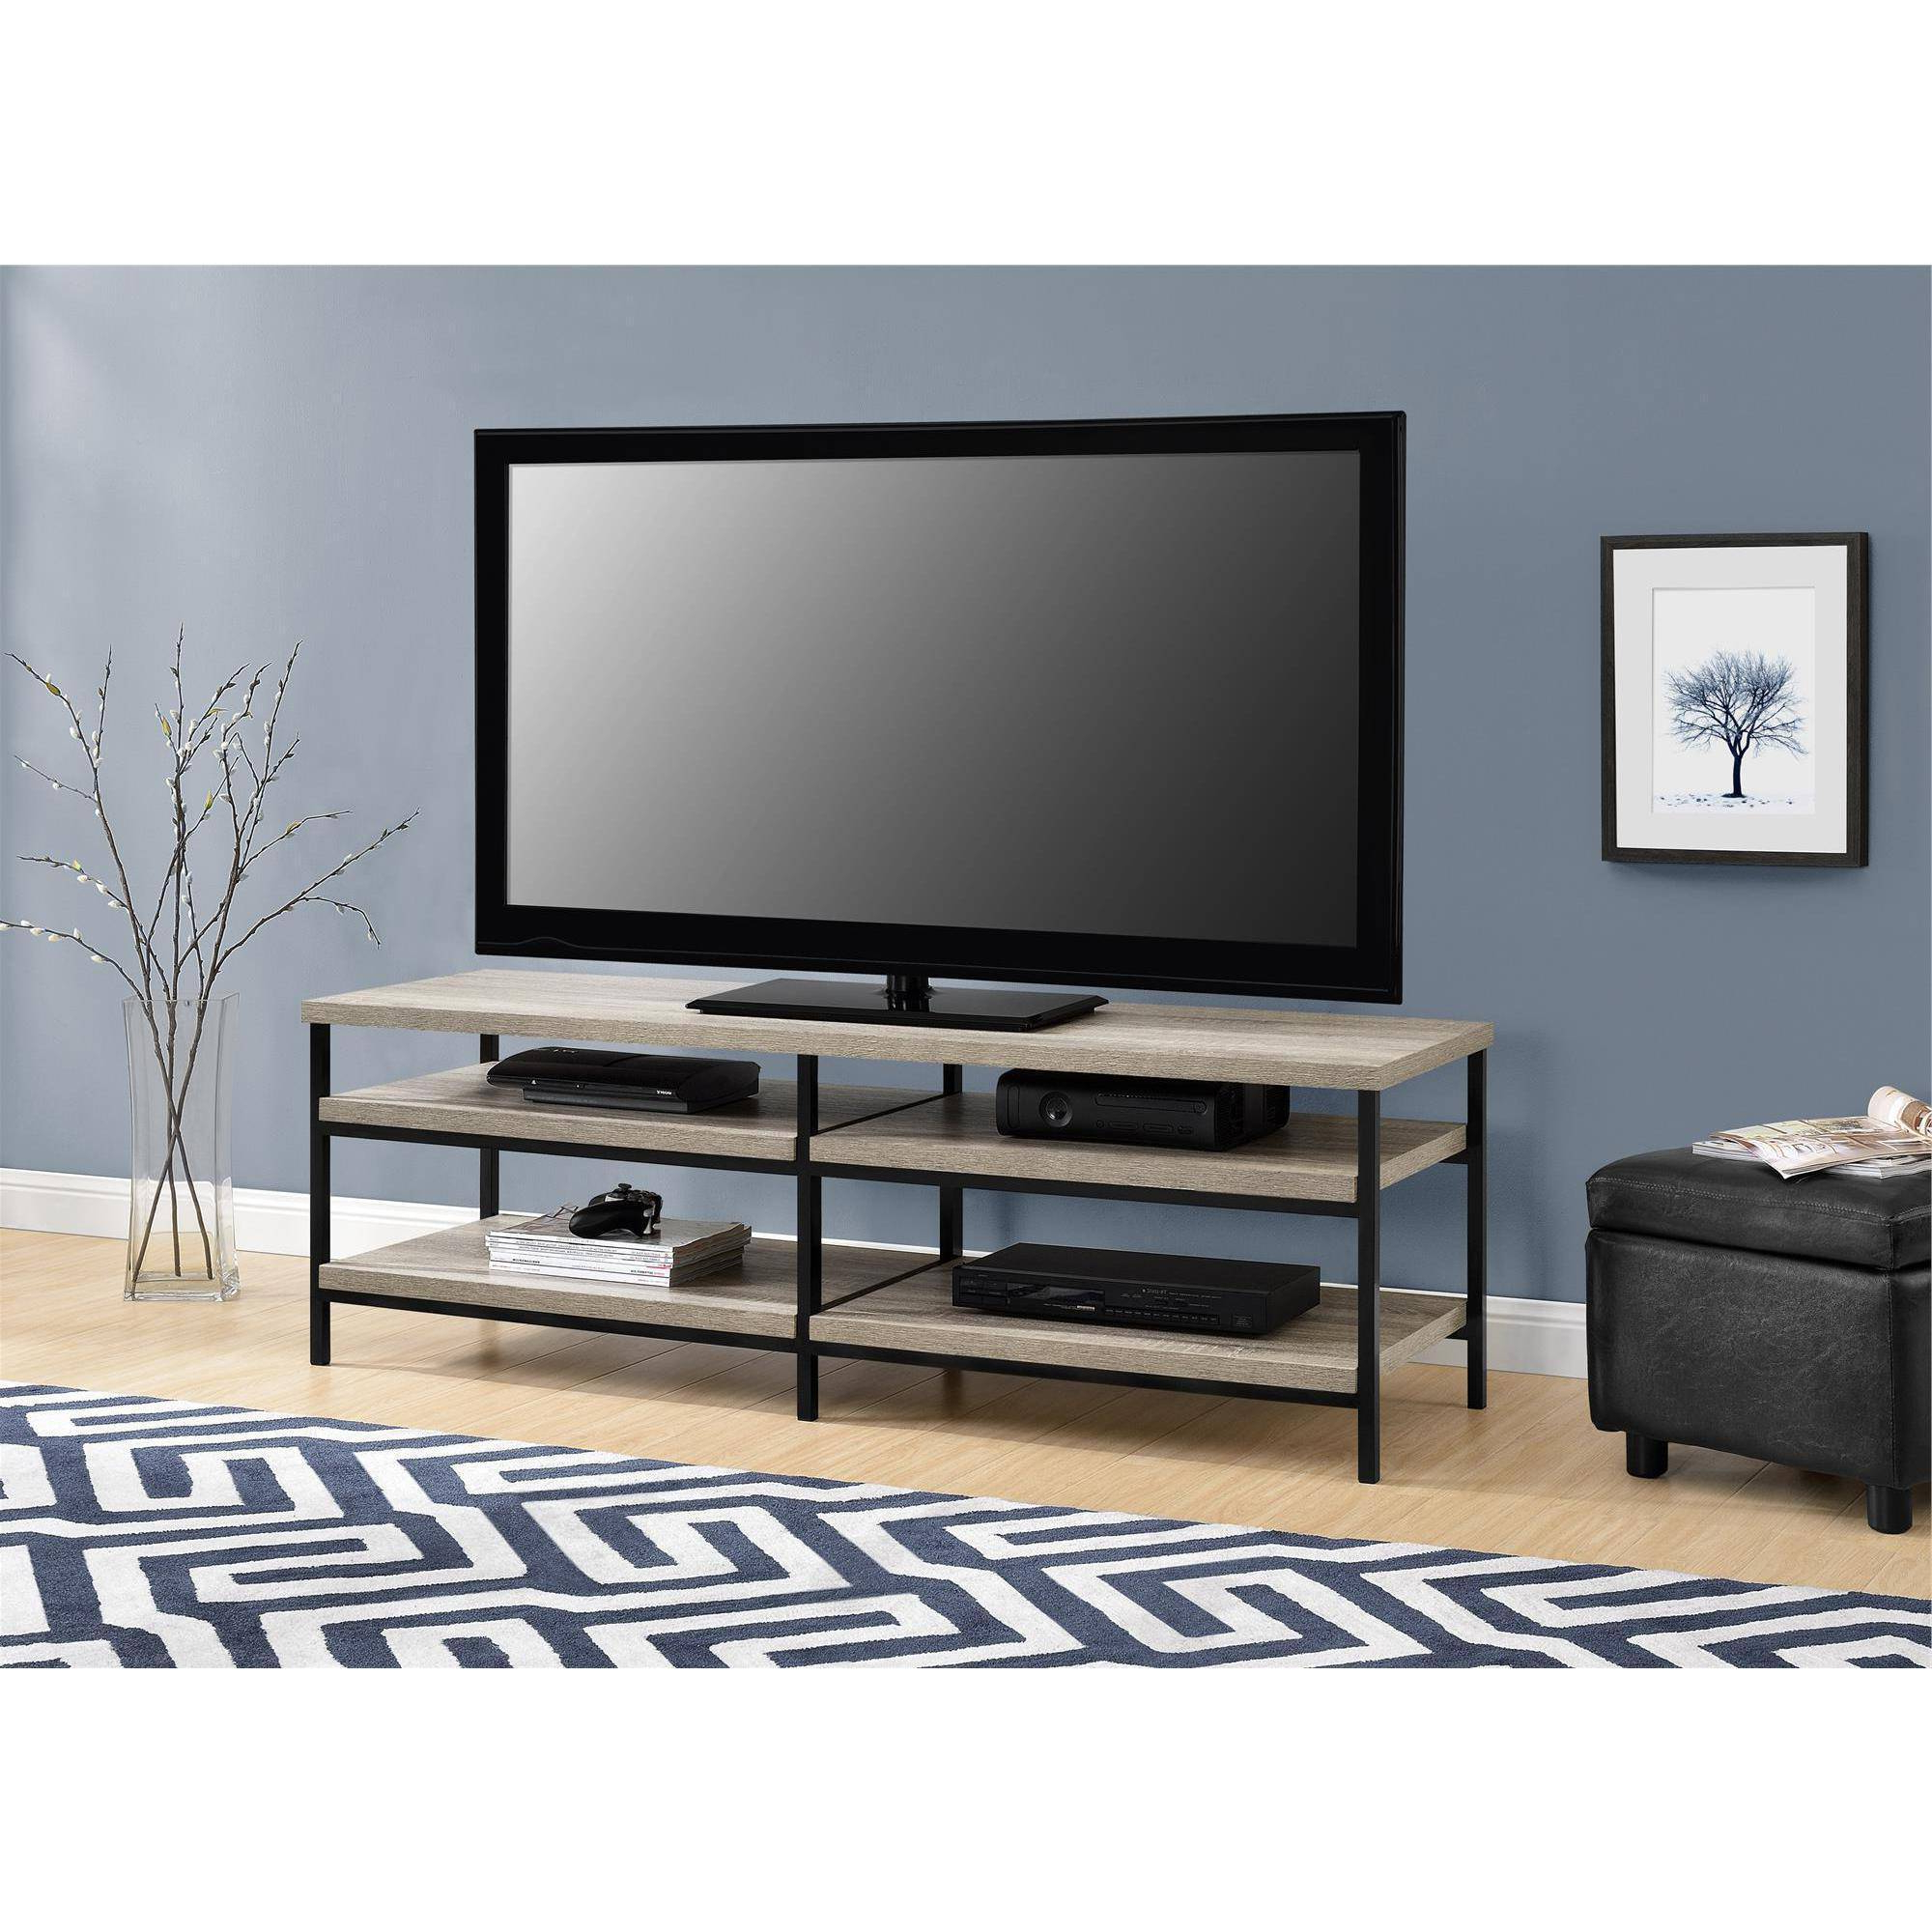 "Elmwood Tv Stand For Tvs Up To 60"", Sonoma Oak – Walmart In 2018 Comet Tv Stands (View 8 of 20)"